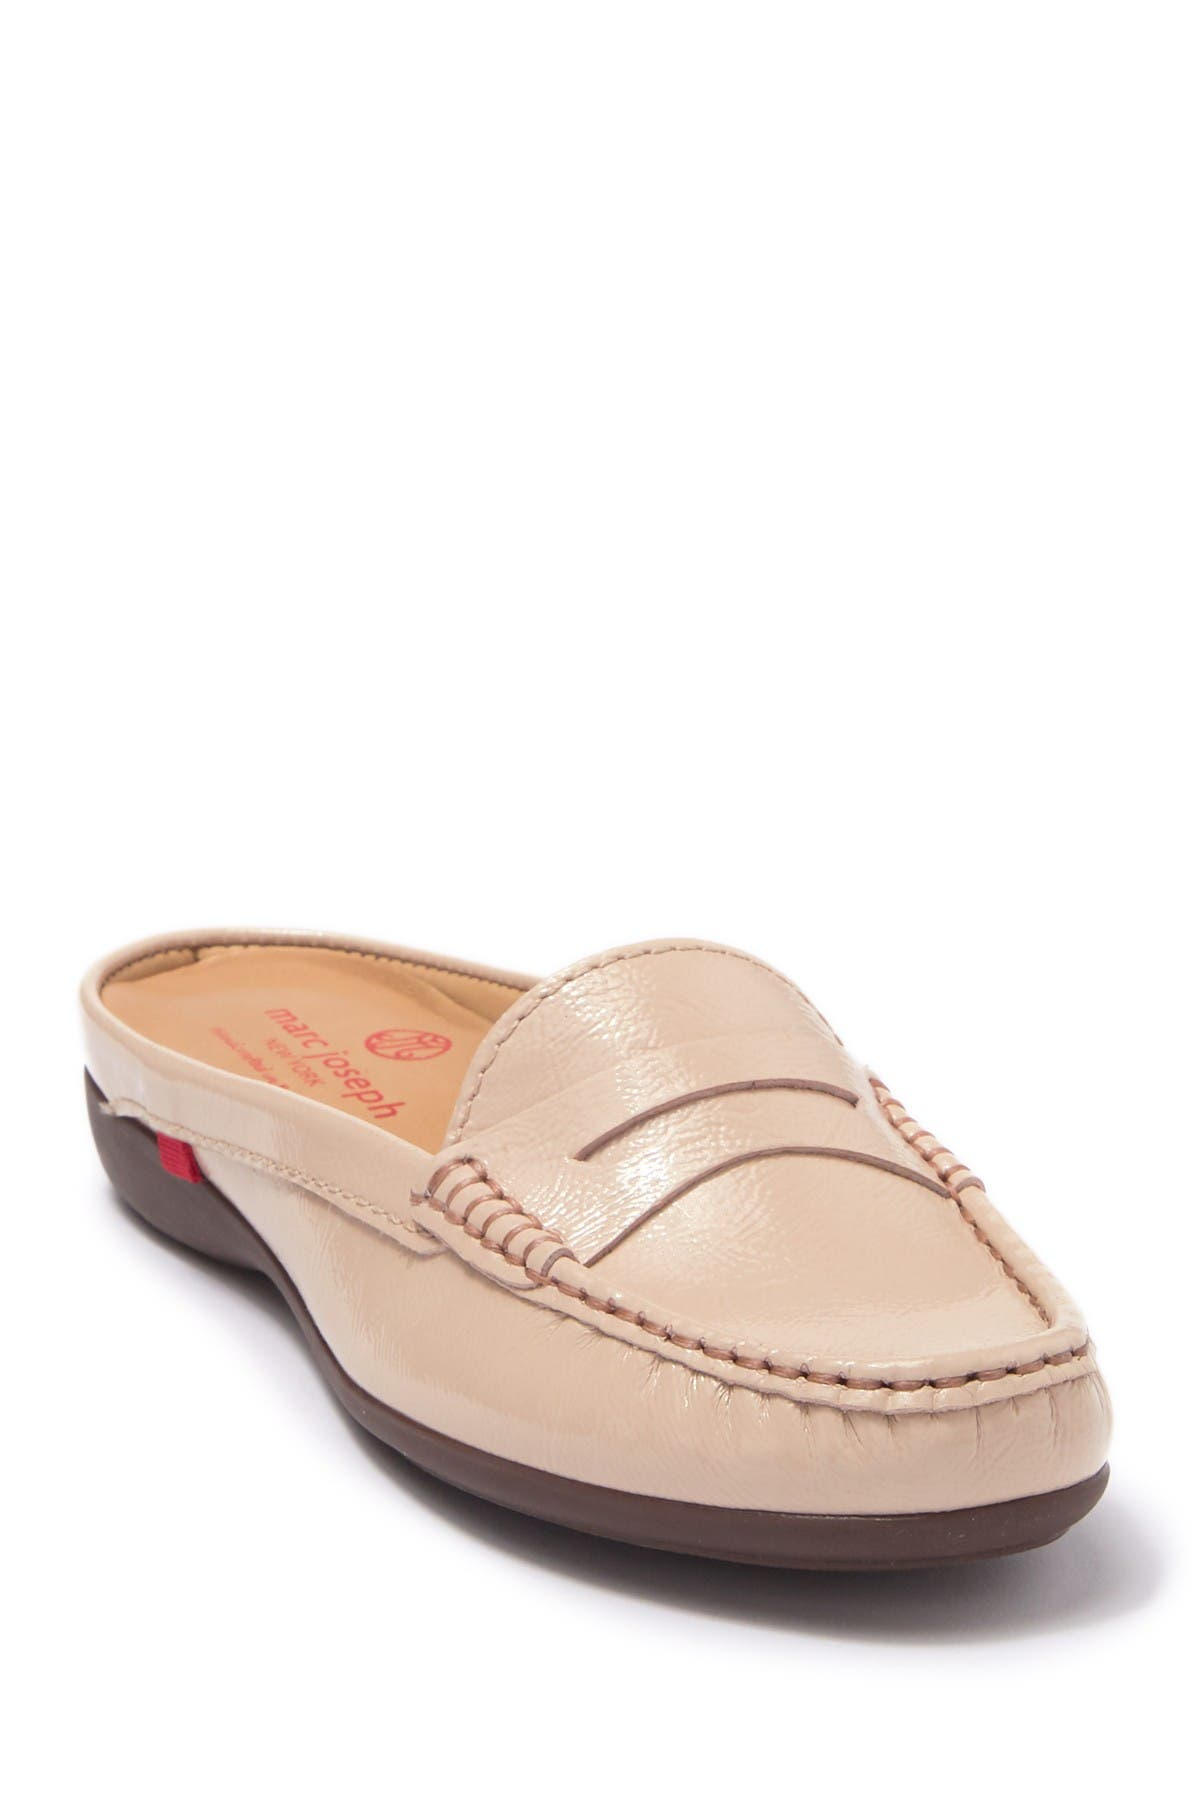 Image of Marc Joseph New York Union St. Leather Loafer Mule